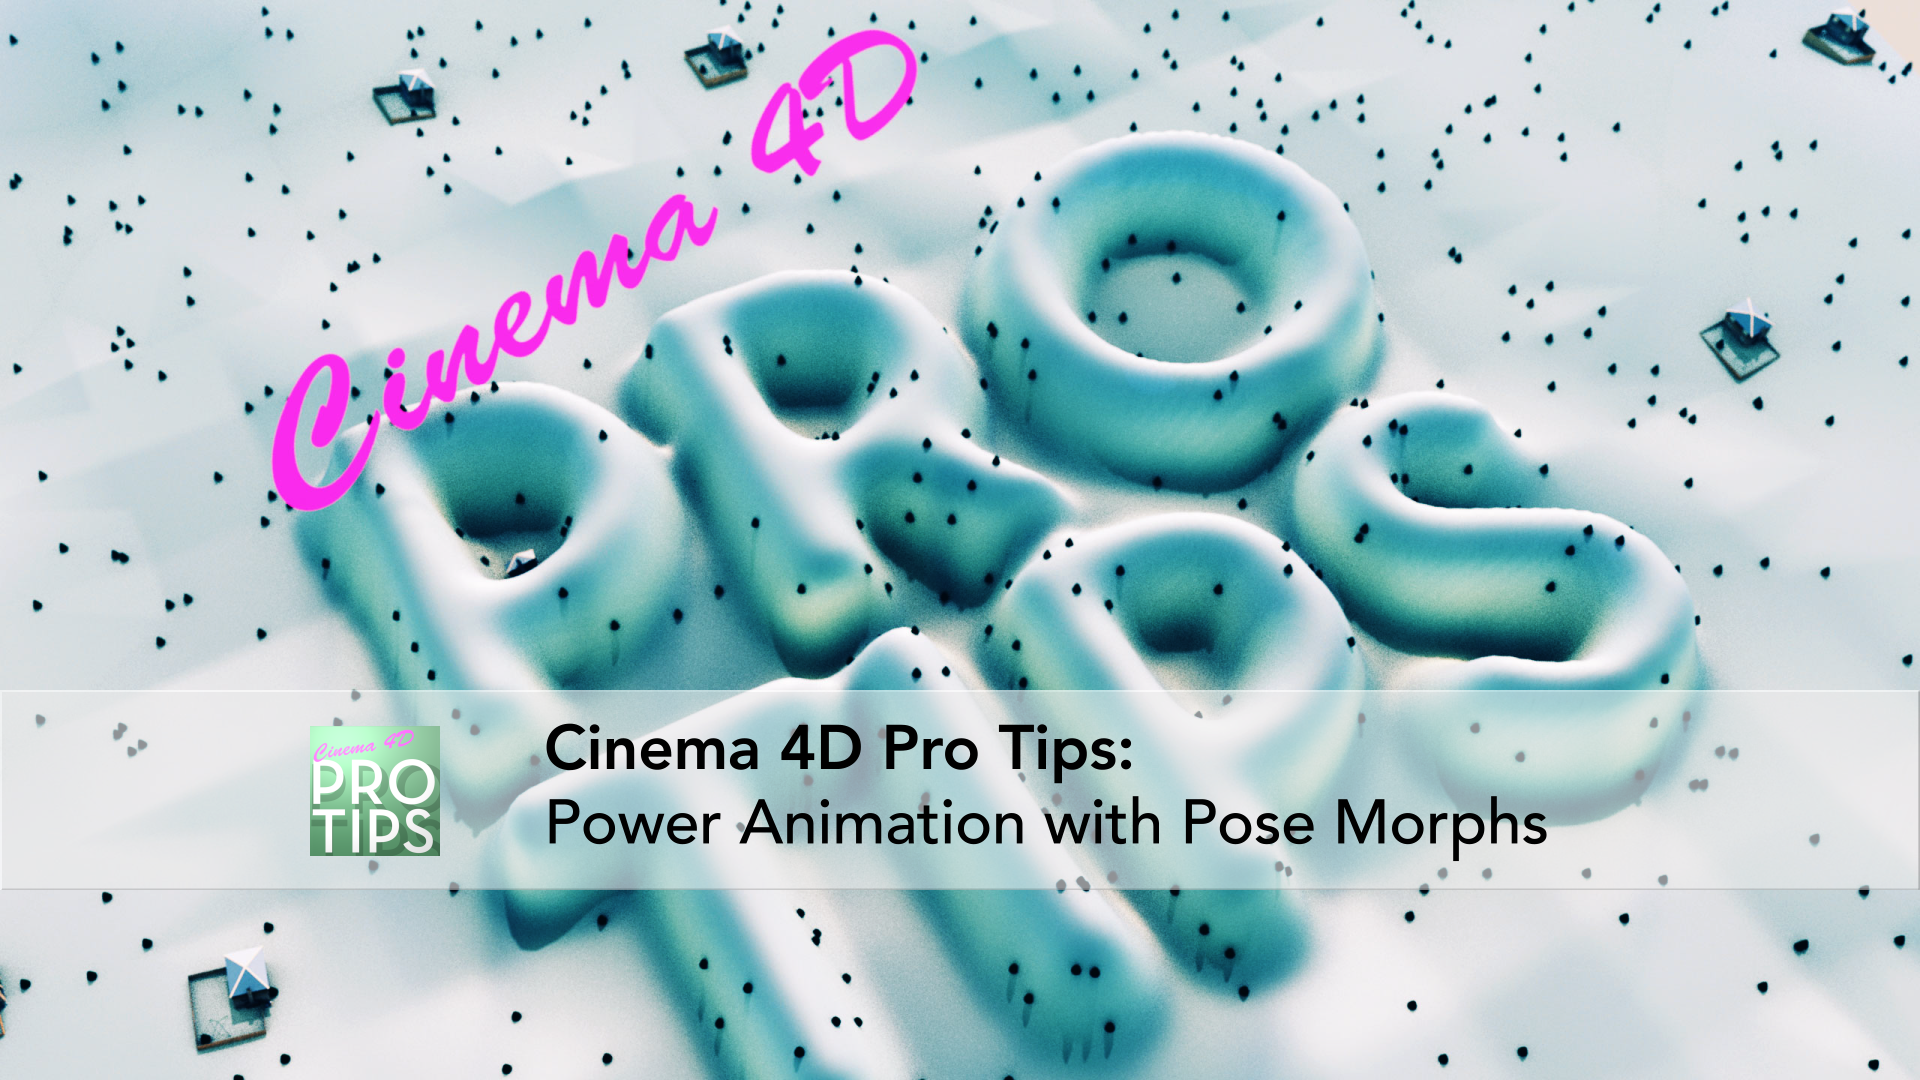 Power Animation with Pose Morphs